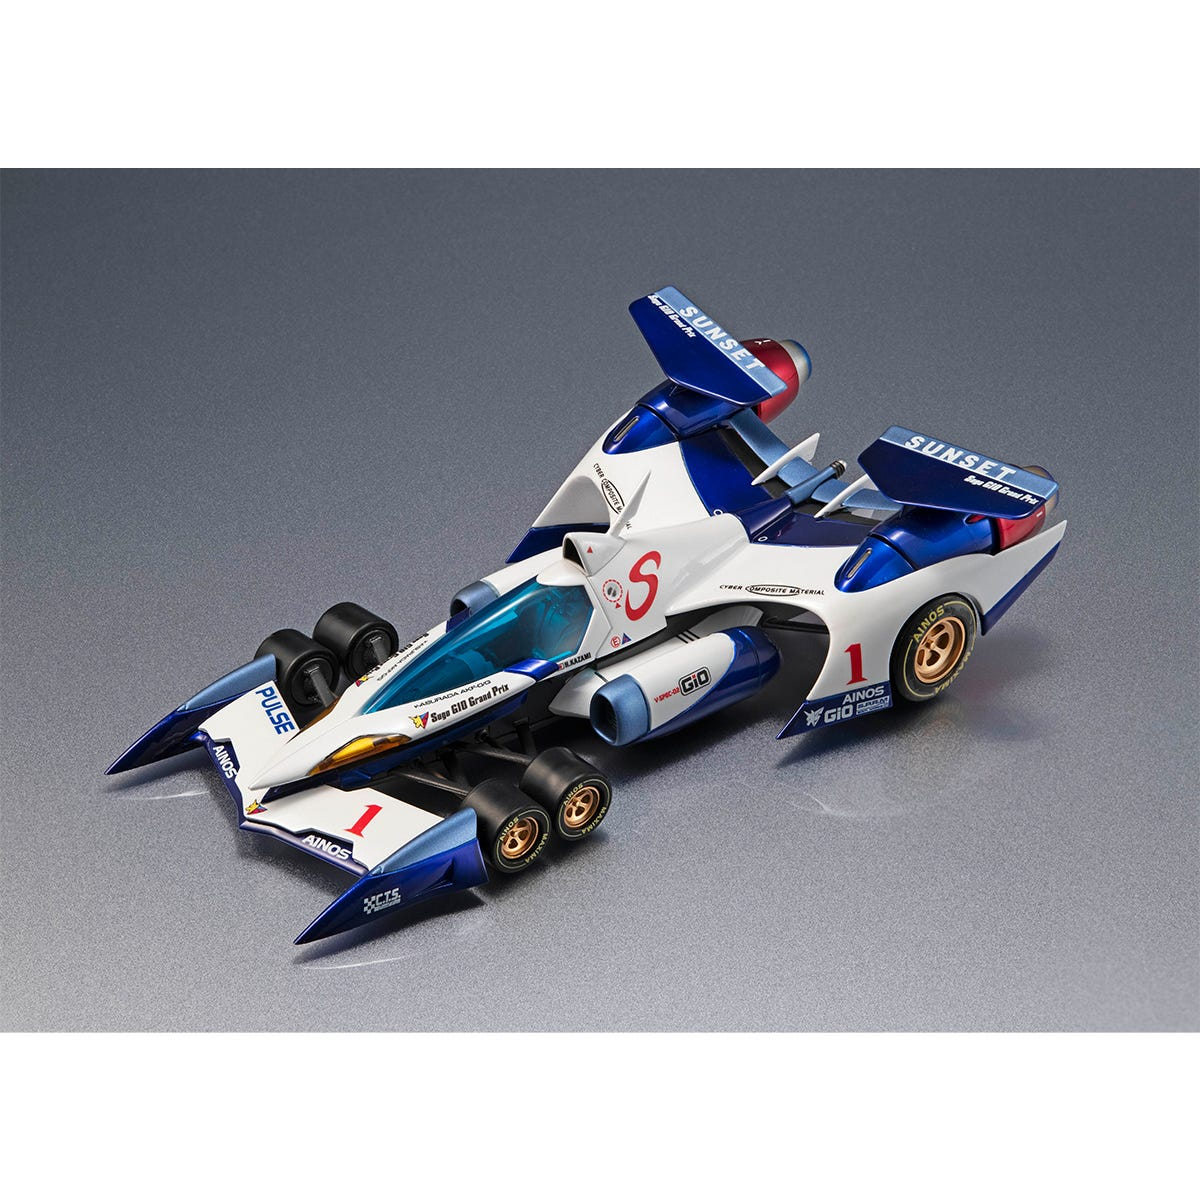 """Megahouse Cyber Formula Sin v Asurada AKF-0/G (Livery Special Edition ) """"Cyber Formula"""", Variable Action Future GPX"""